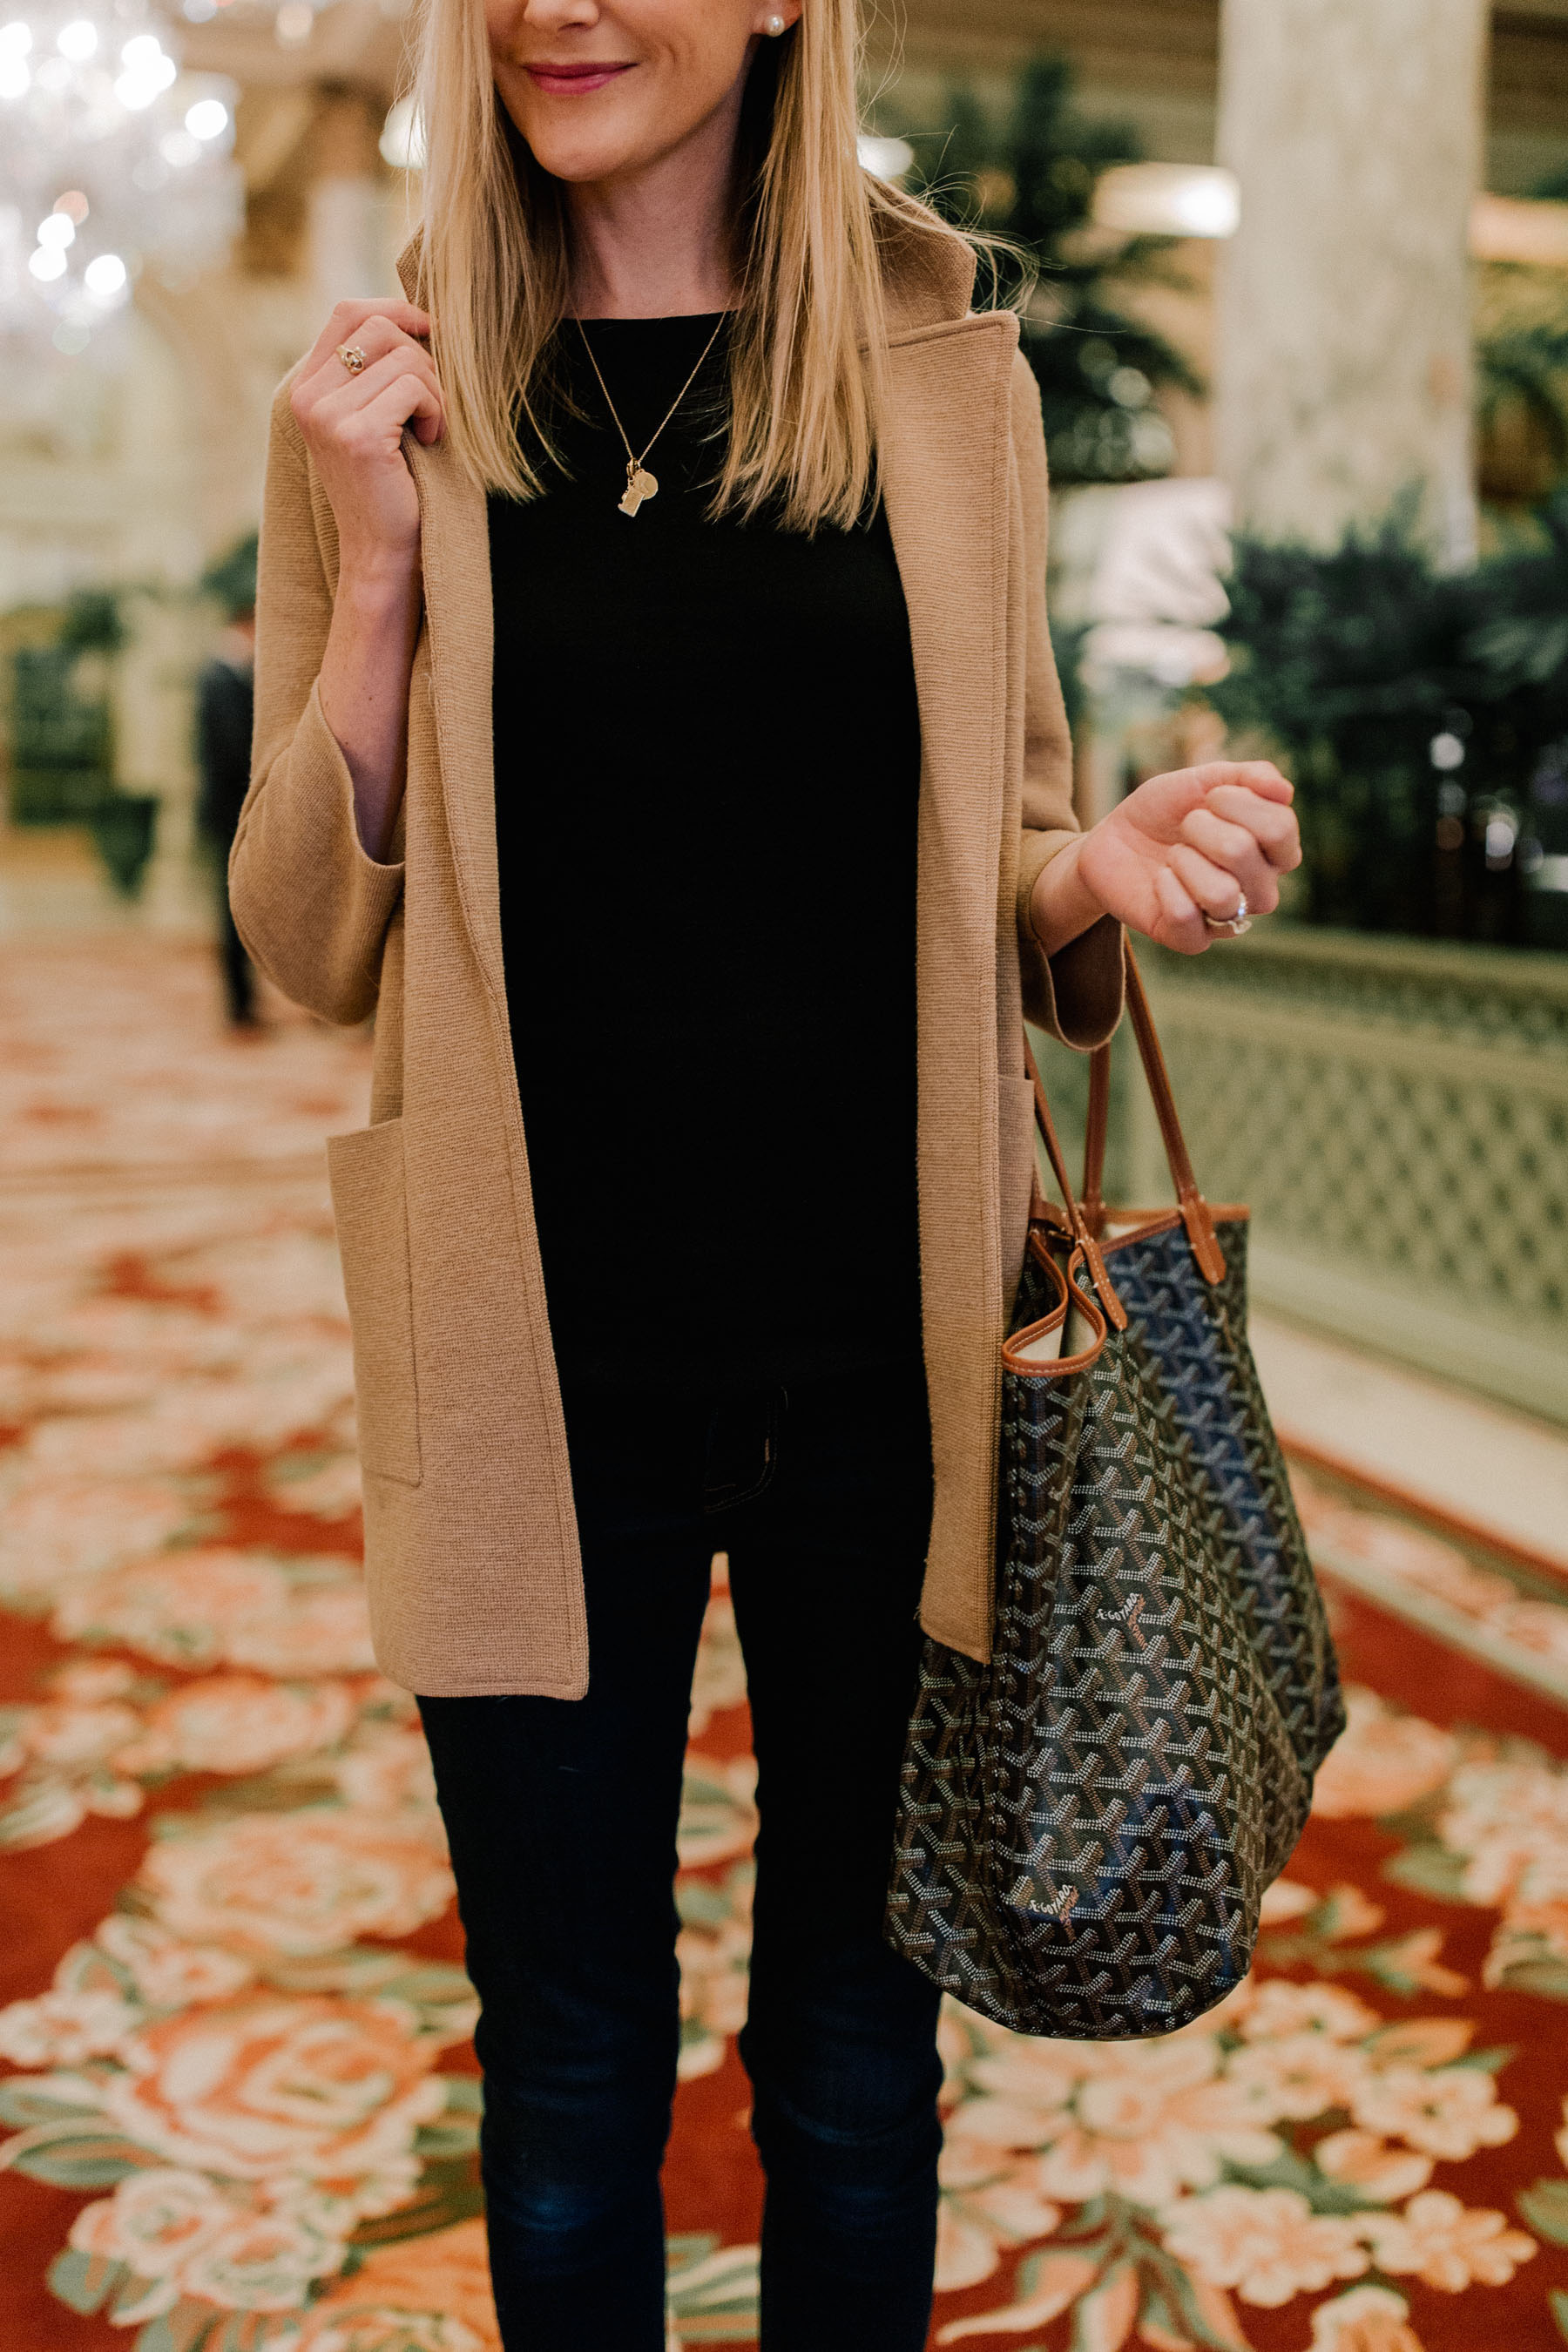 Kelly's outfit: Black Sweater / Rag & Bone Jeans  / Camel Sweater Blazer / Goyard Tote